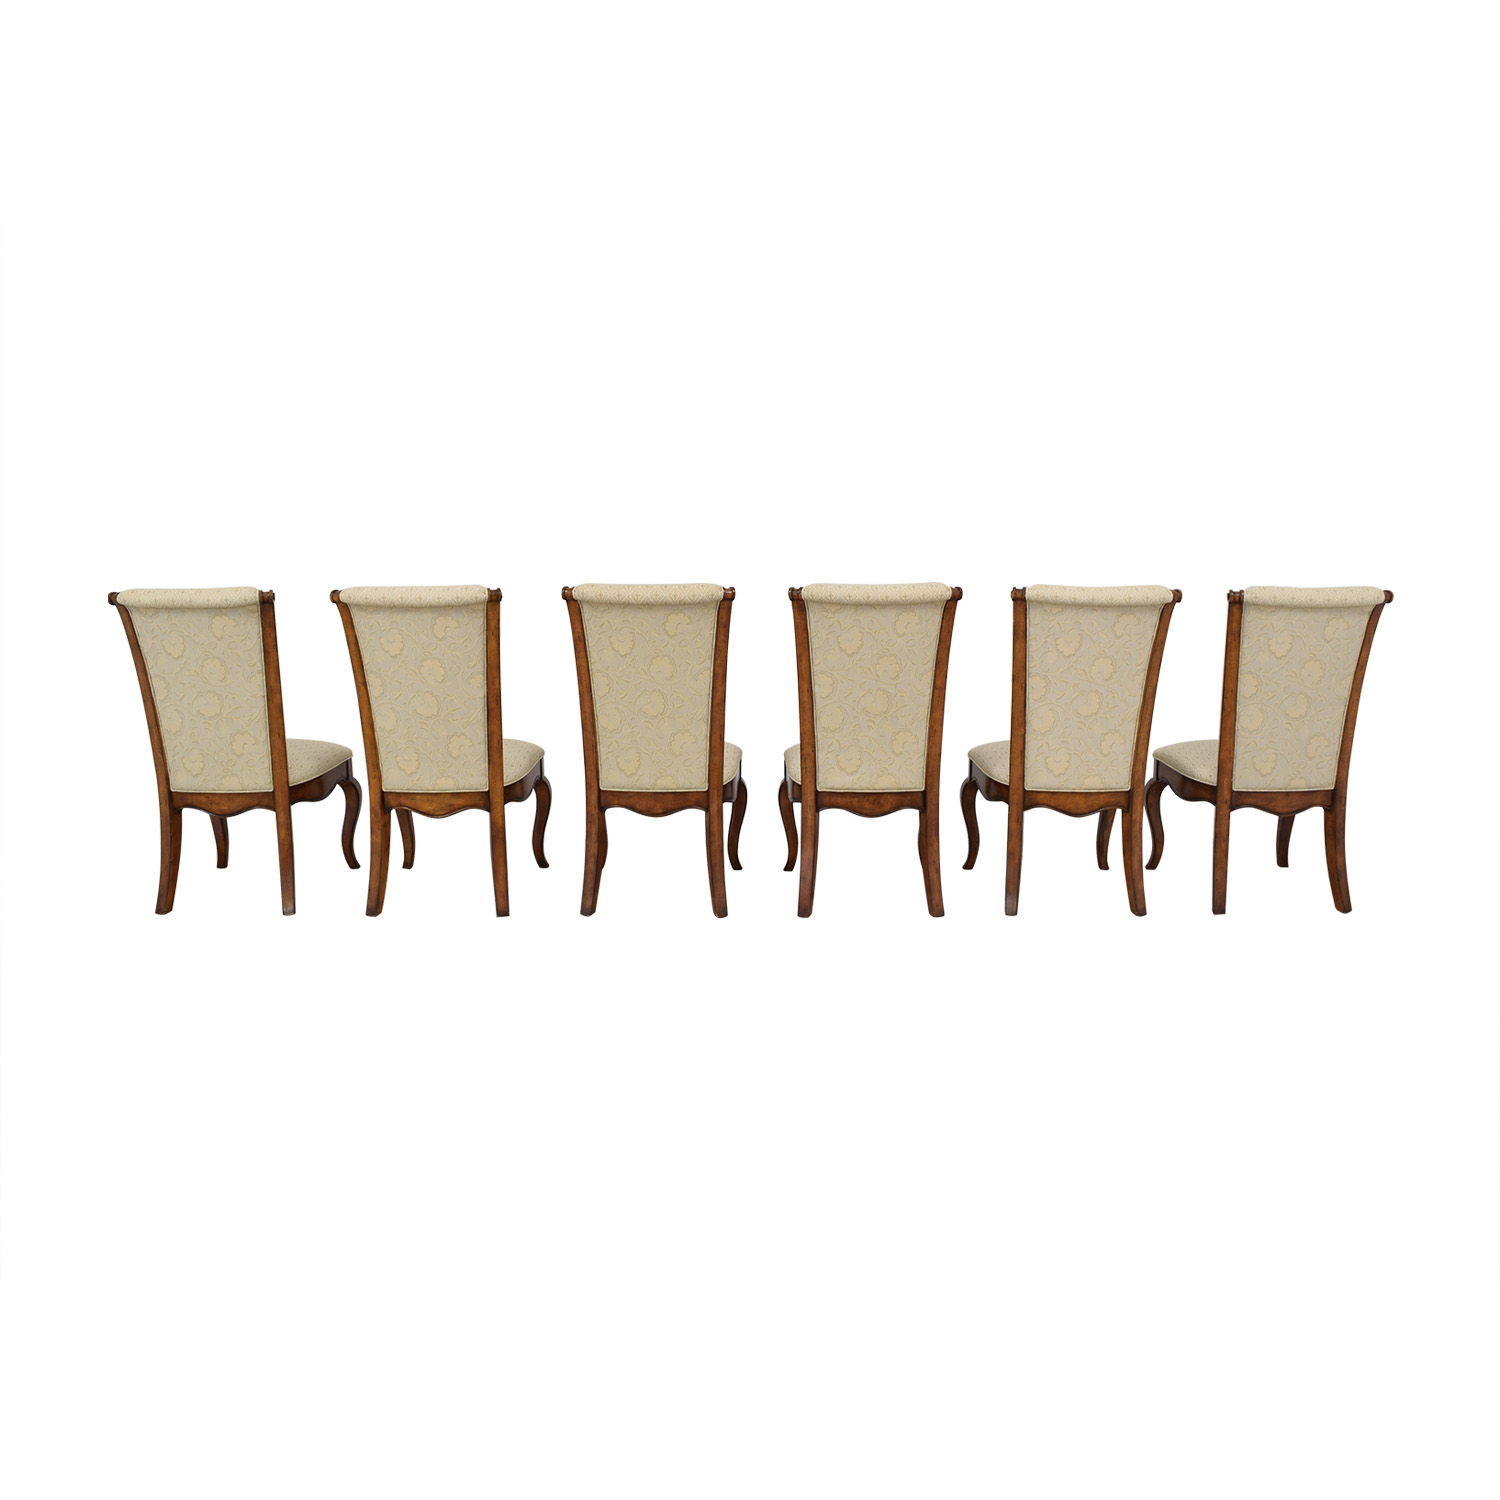 80 Off Drexel Heritage Drexel Heritage Extendable Dining Chairs Chairs